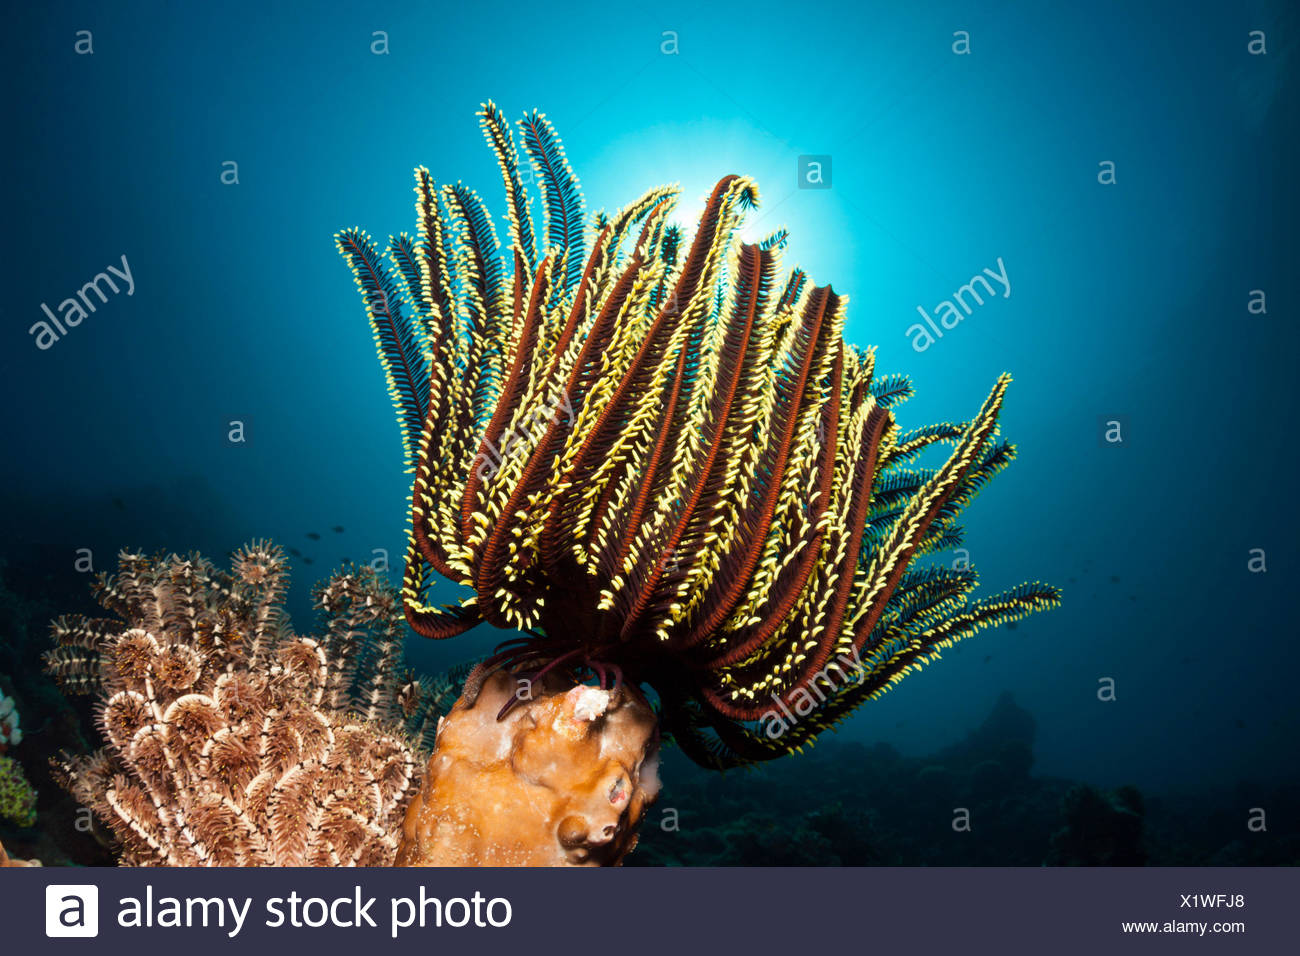 Prachthaarstern in the reef, Oxycomanthus bennetti, ambon, the Moluccas, Indonesia Stock Photo